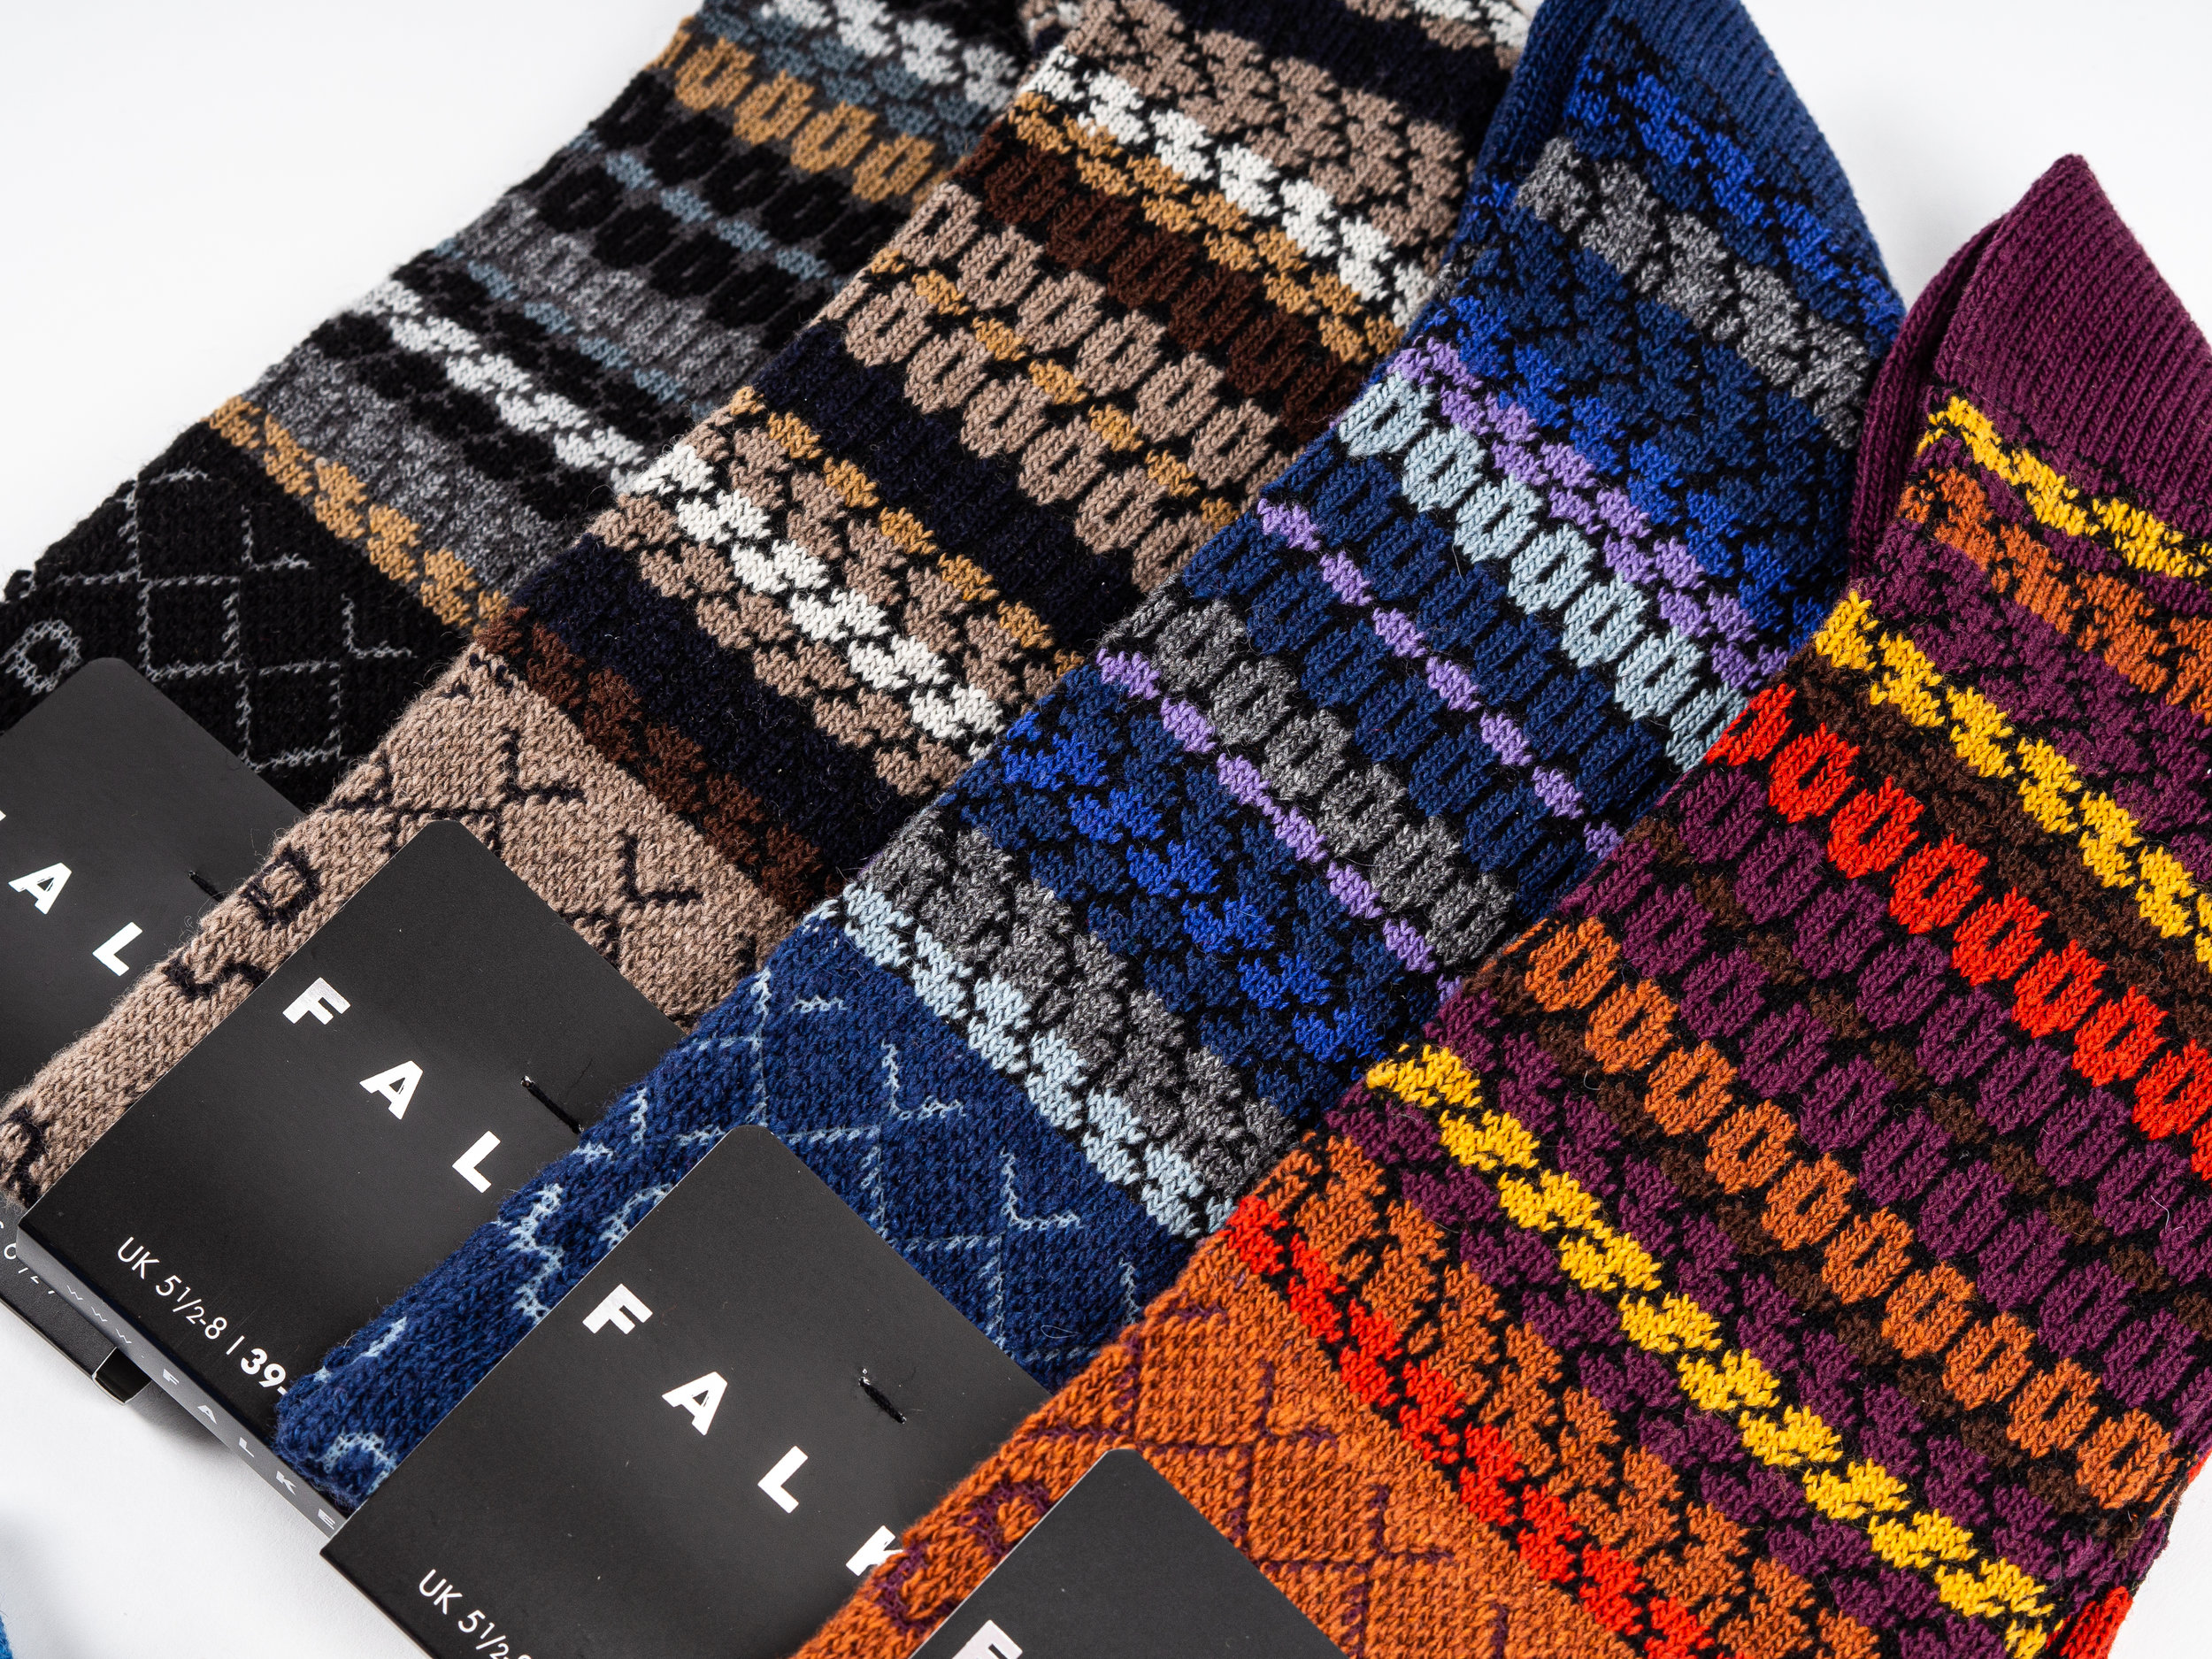 Falke Chunky Knit Socks - These socks are made with a luxurious blend of cashmere, wool, and viscose. They are thick, warm, and plush; perfect in winter boots or when lounging at home. They are anatomically fitted, with reinforced stress zones. Falke's Chunky Knit Socks are made in the EU.